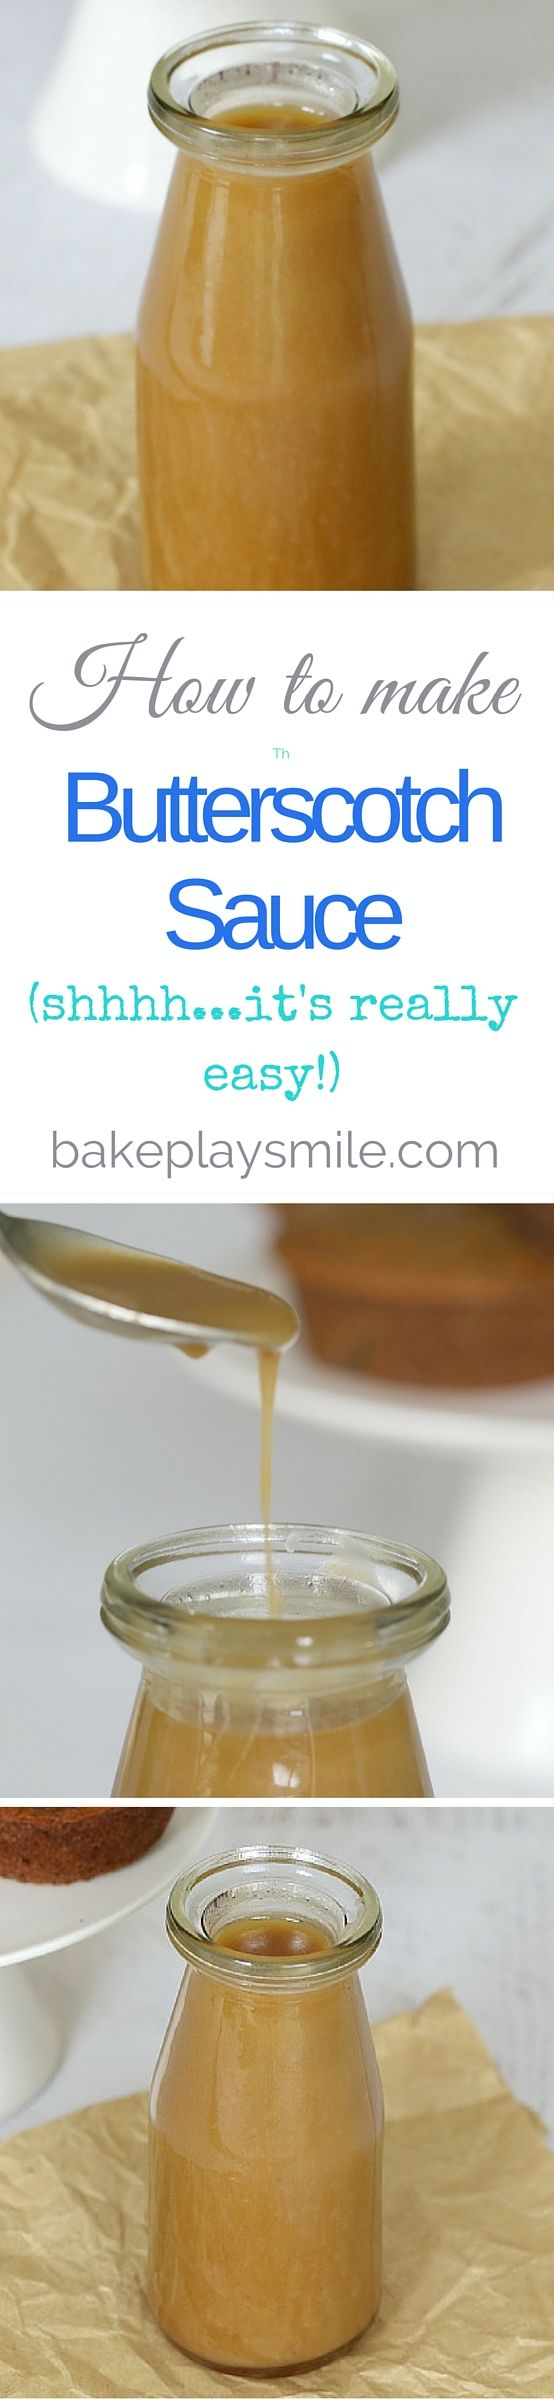 A step by step guide to making the most deliciously simple Butterscotch Sauce! Yum! ~